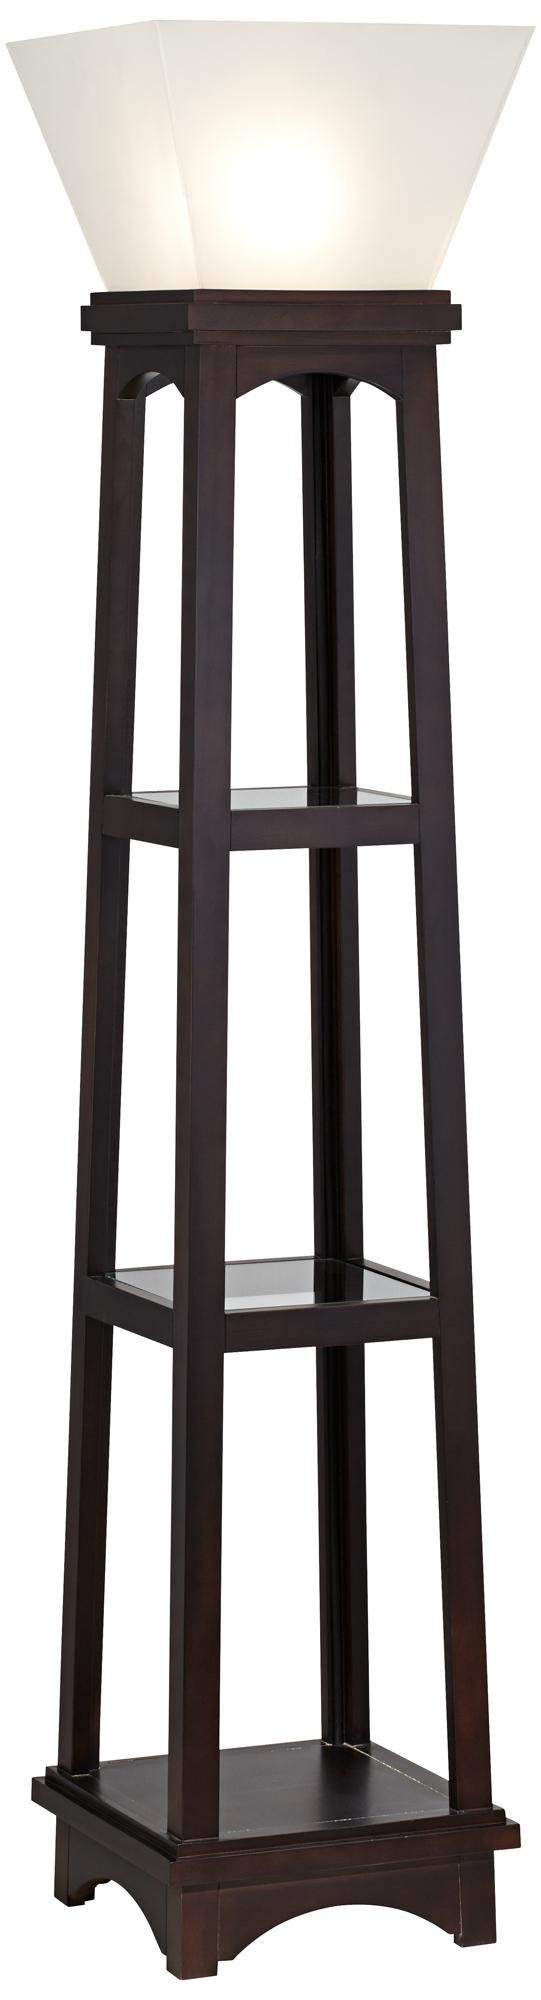 Monaco Espresso 3 Shelf Etagere Torchiere Floor Lamp